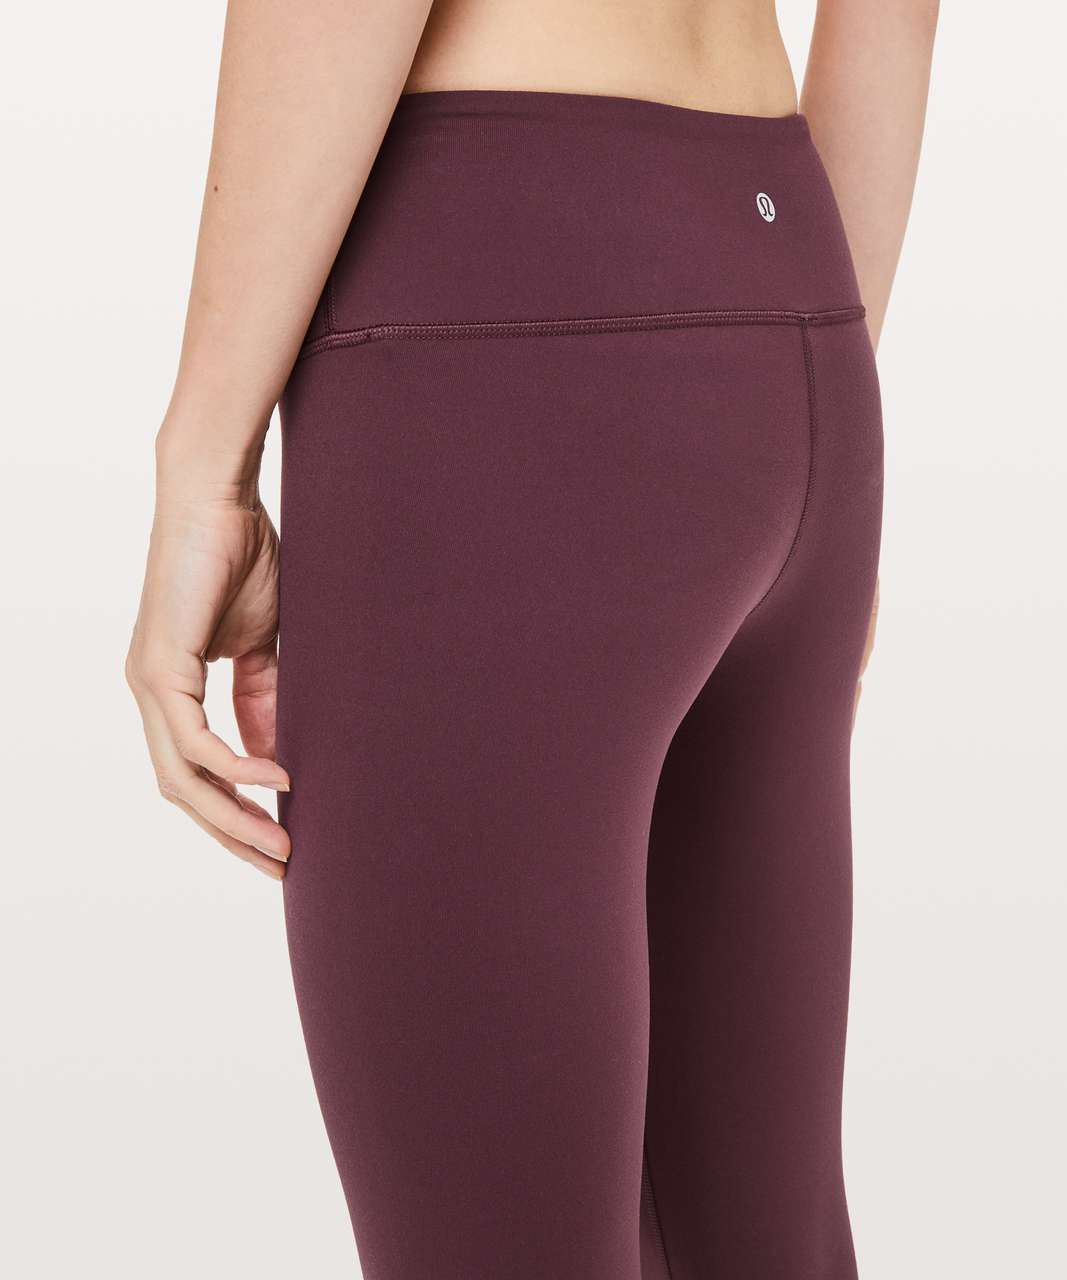 "Lululemon Wunder Under Crop III *Full-On Luon 21"" - Dark Adobe"